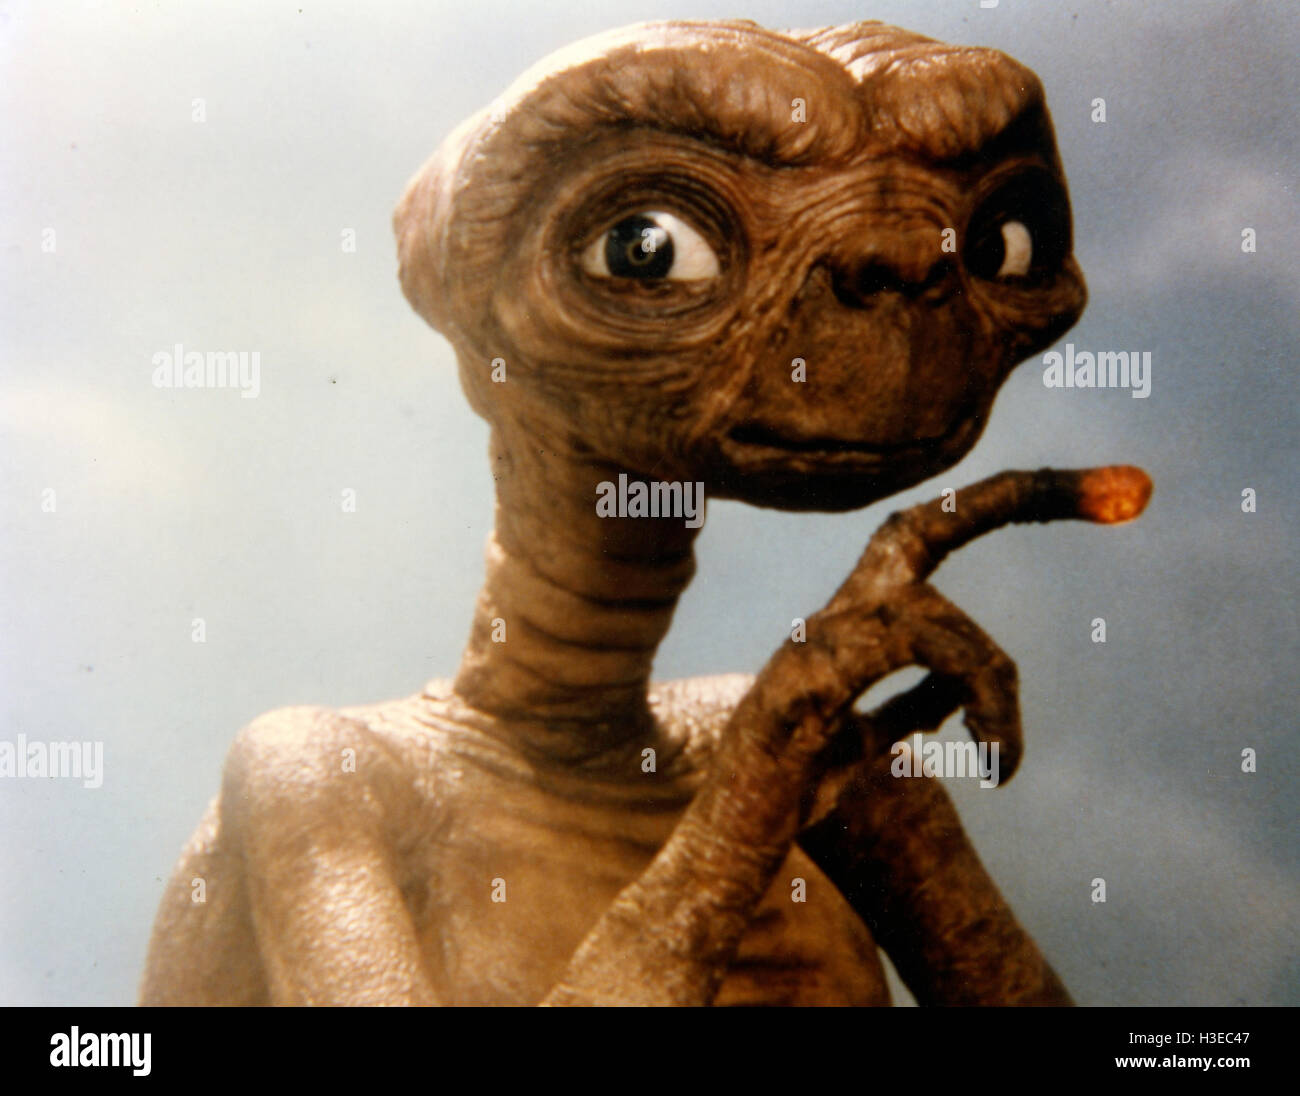 E.T. the EXTRA-TERRESTRIAL 1982 Universal Pictures film - Stock Image